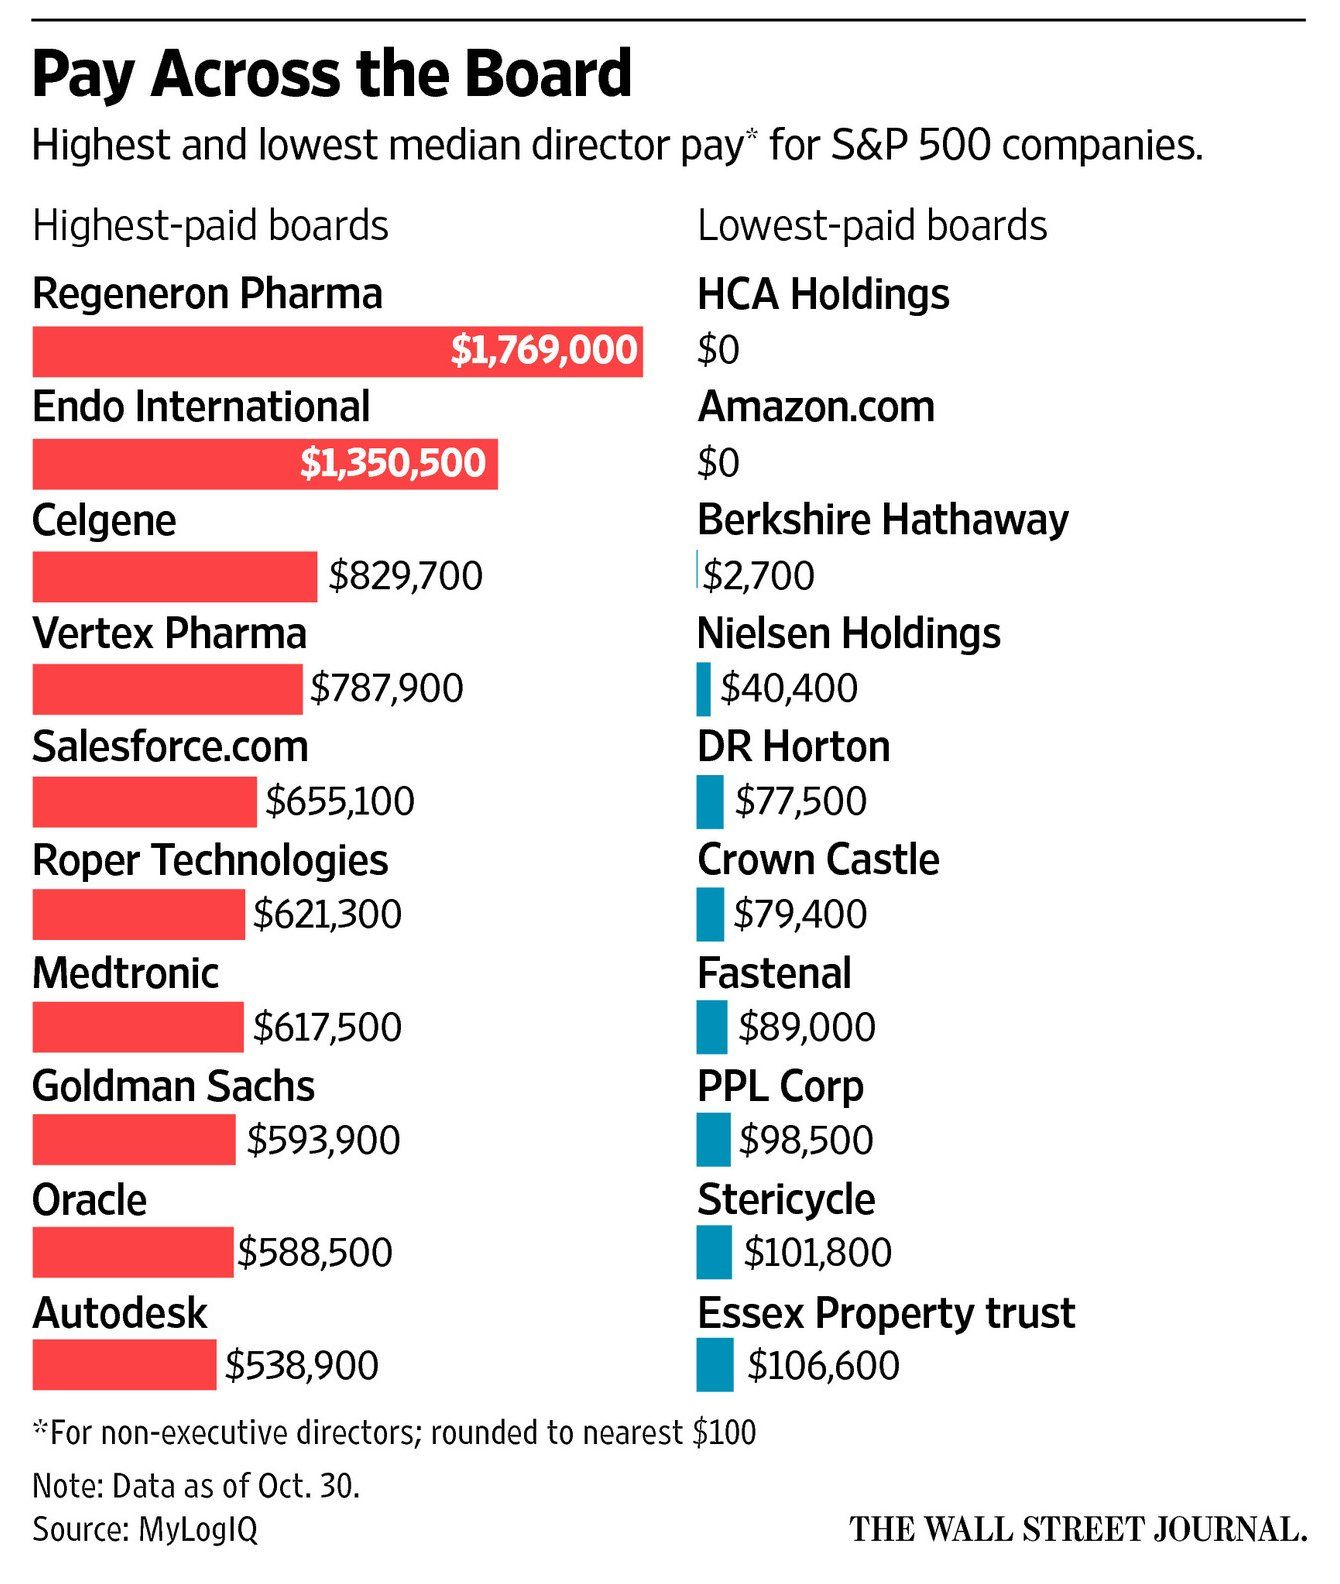 Corporate directors pay ratchets higher as risks grow on